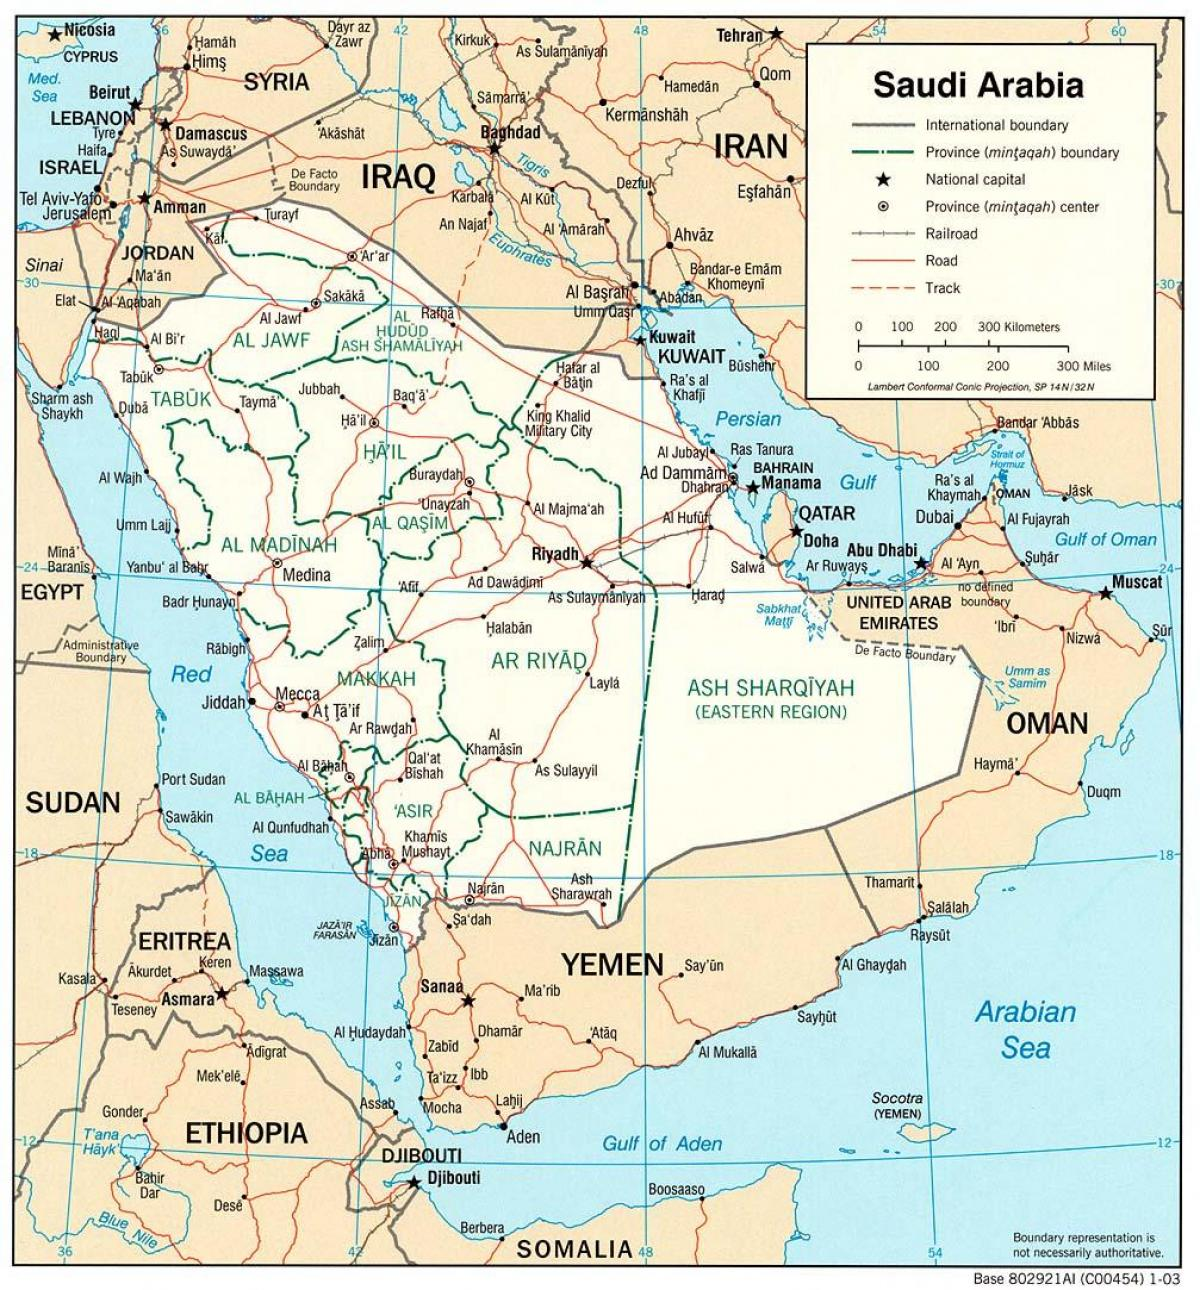 Saudi Arabia full map